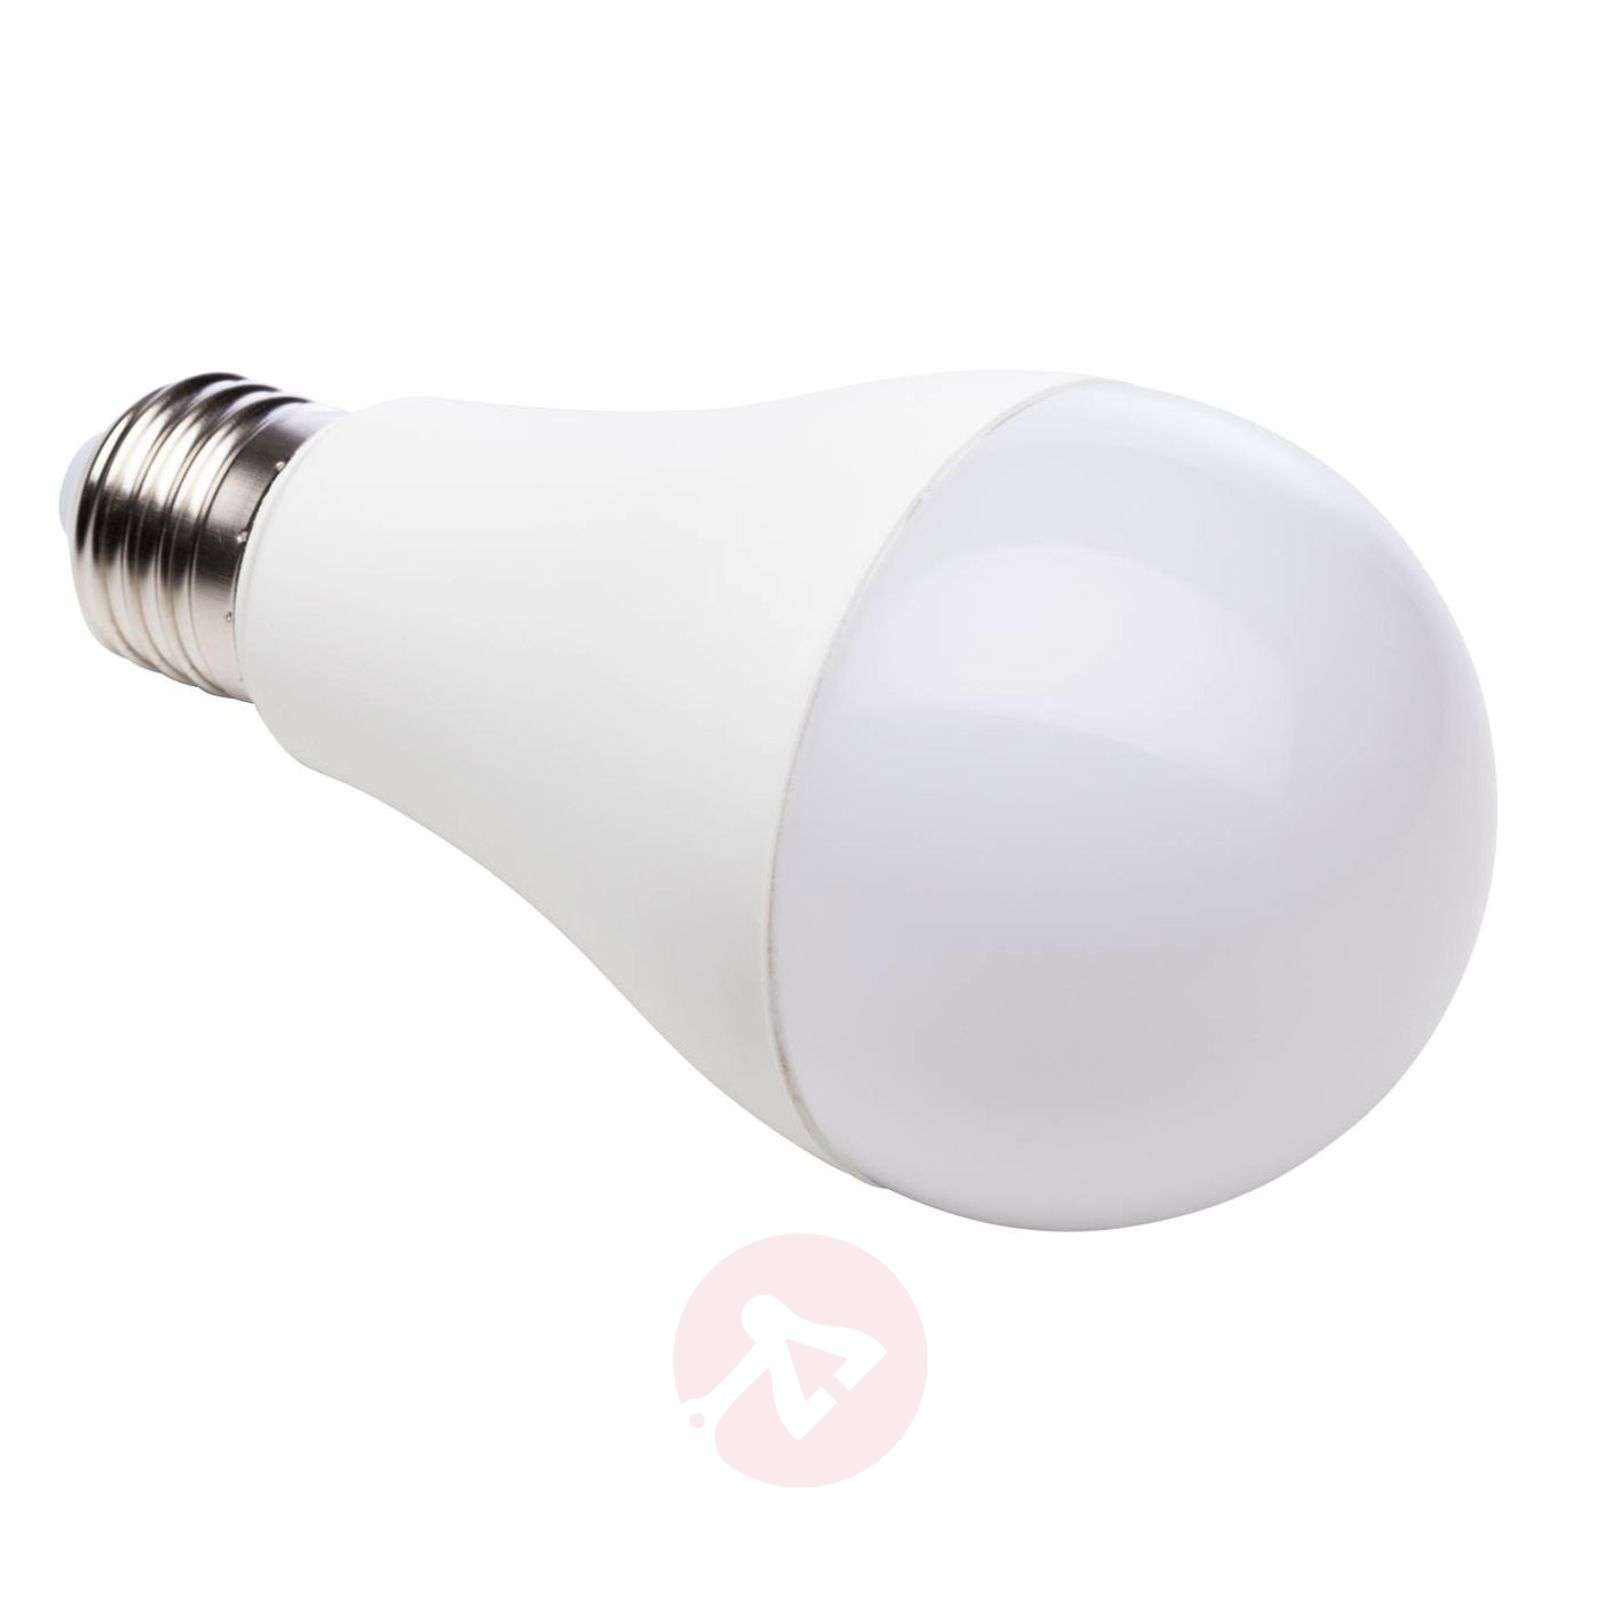 Ampoule LED mate E27 13 W 927-6520265-01